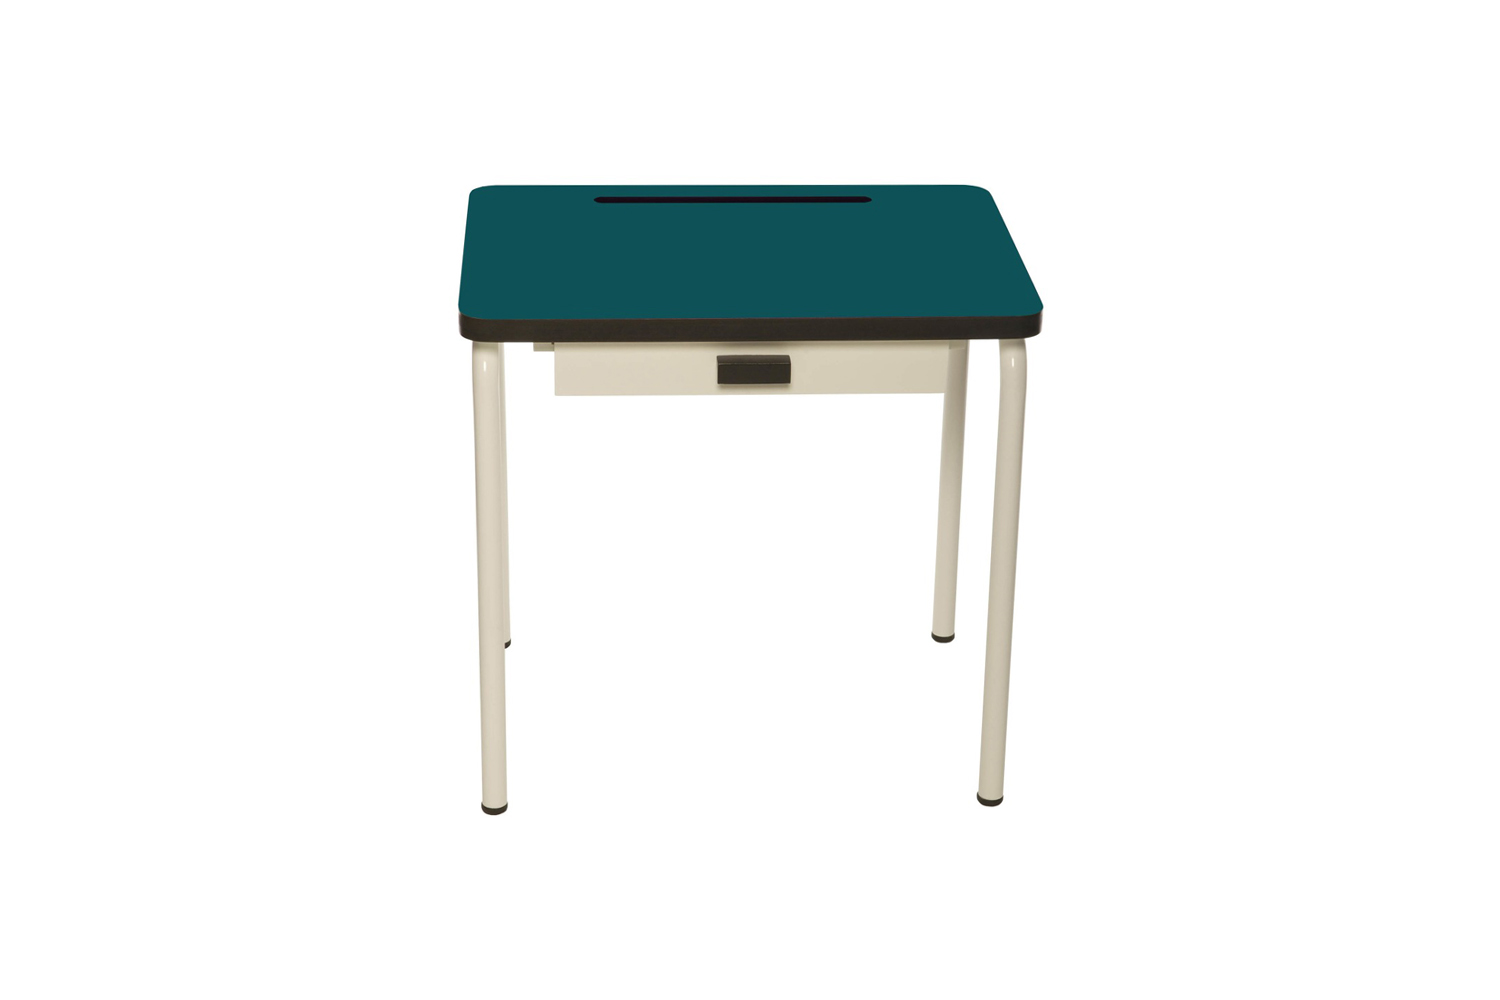 From Les Gambettes in France, the Règine Desk for Kids, shown in Peacock, resembles classic French schoolhouse furniture; $